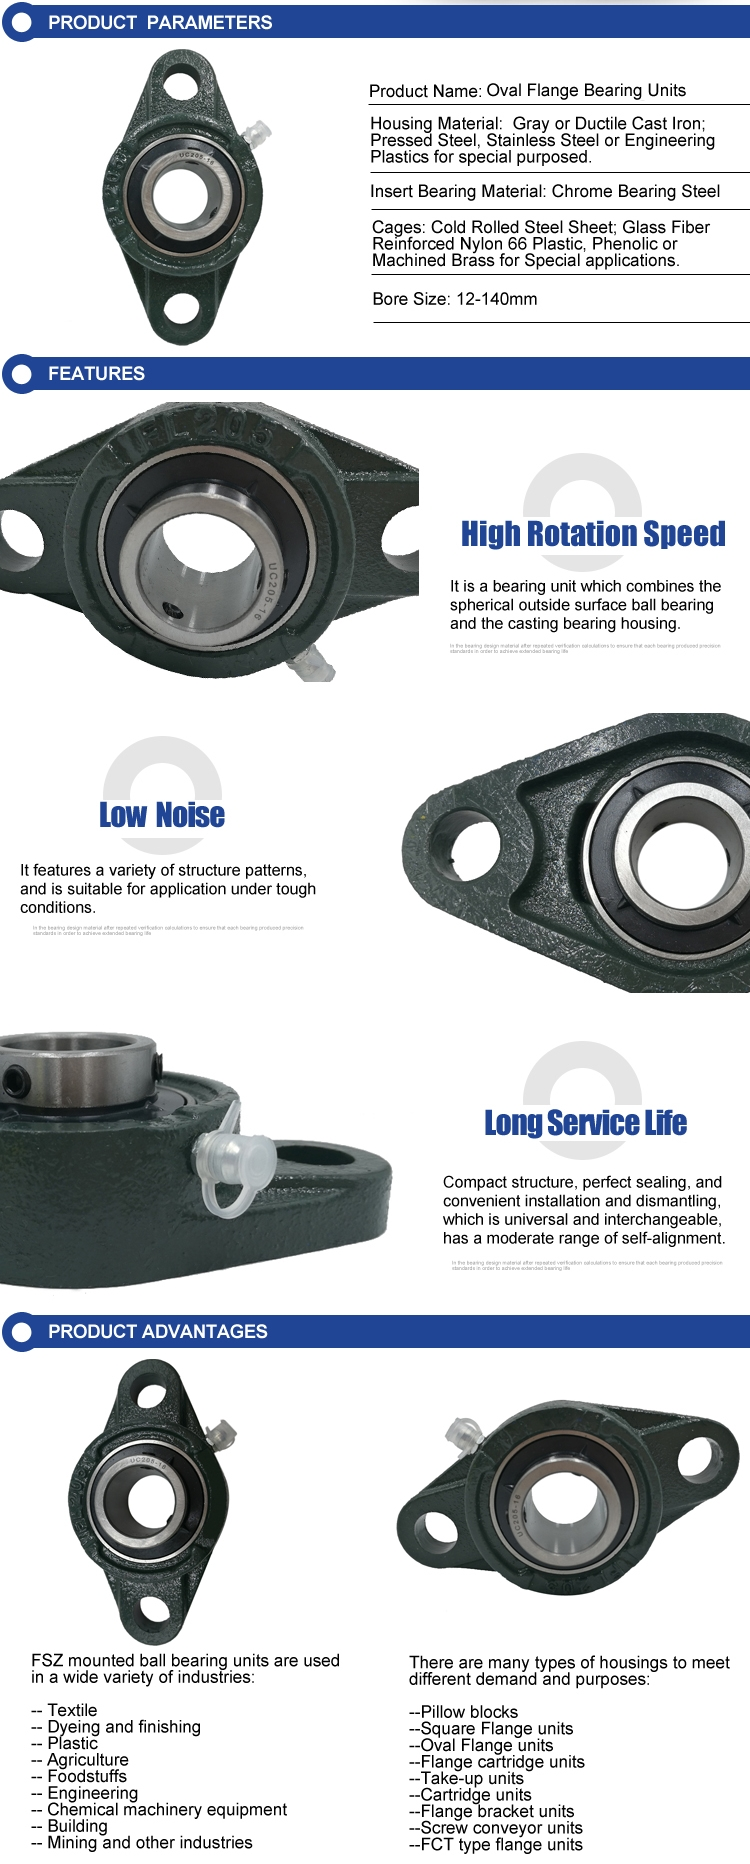 Low noise oval flange UCFL204 mounted bearing units